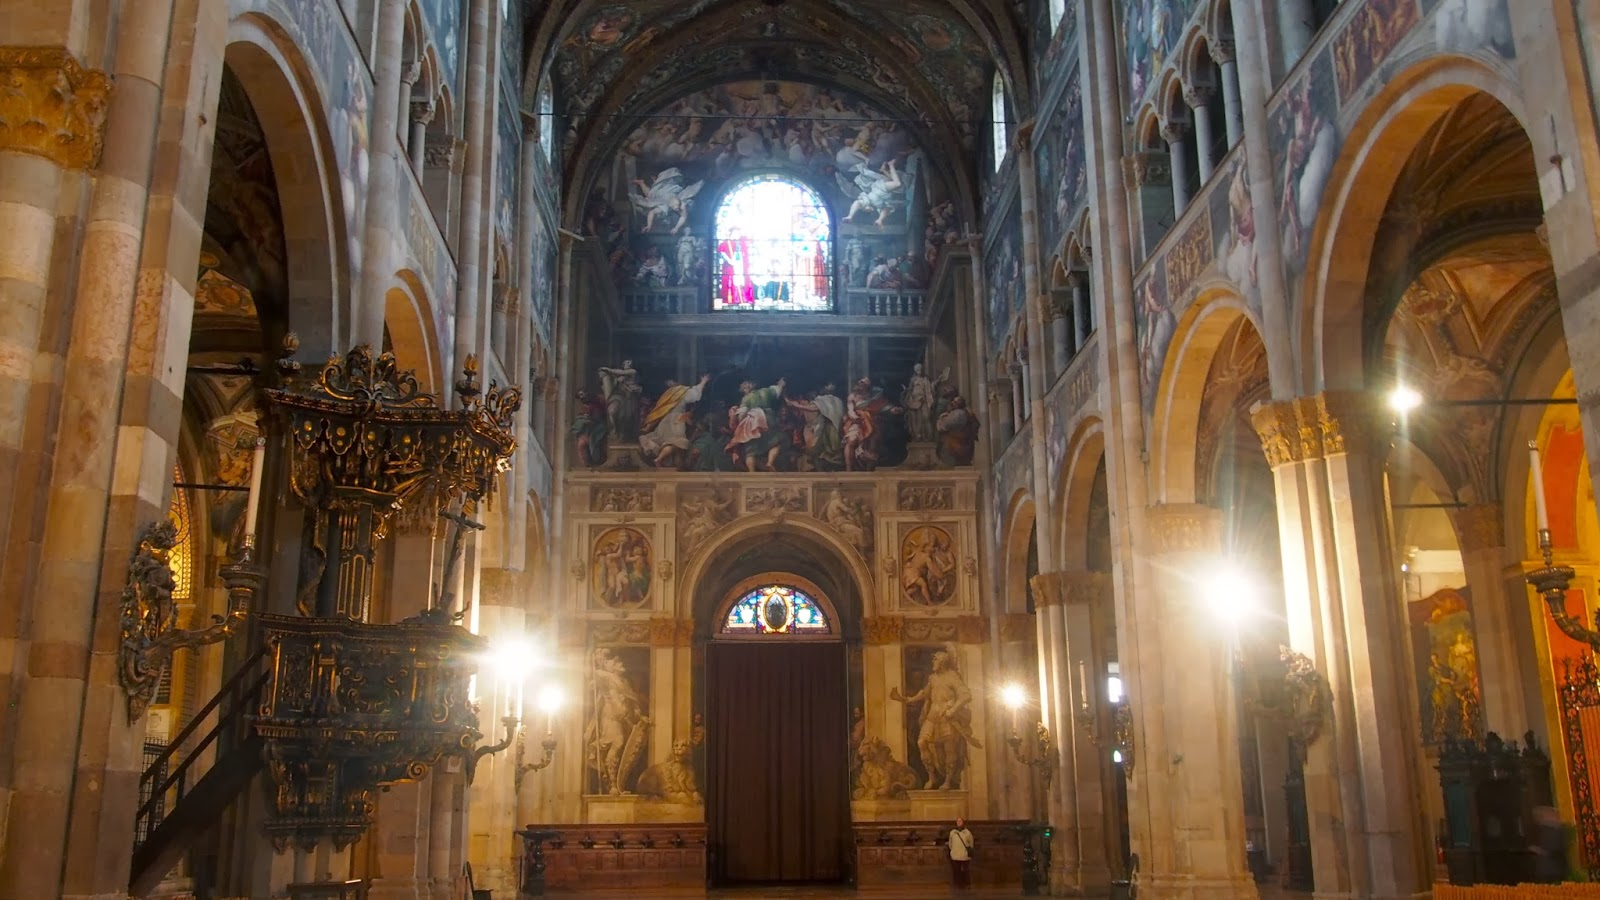 Parma 39 S Cathedral Departs From The Simple Basic Piers That Are A